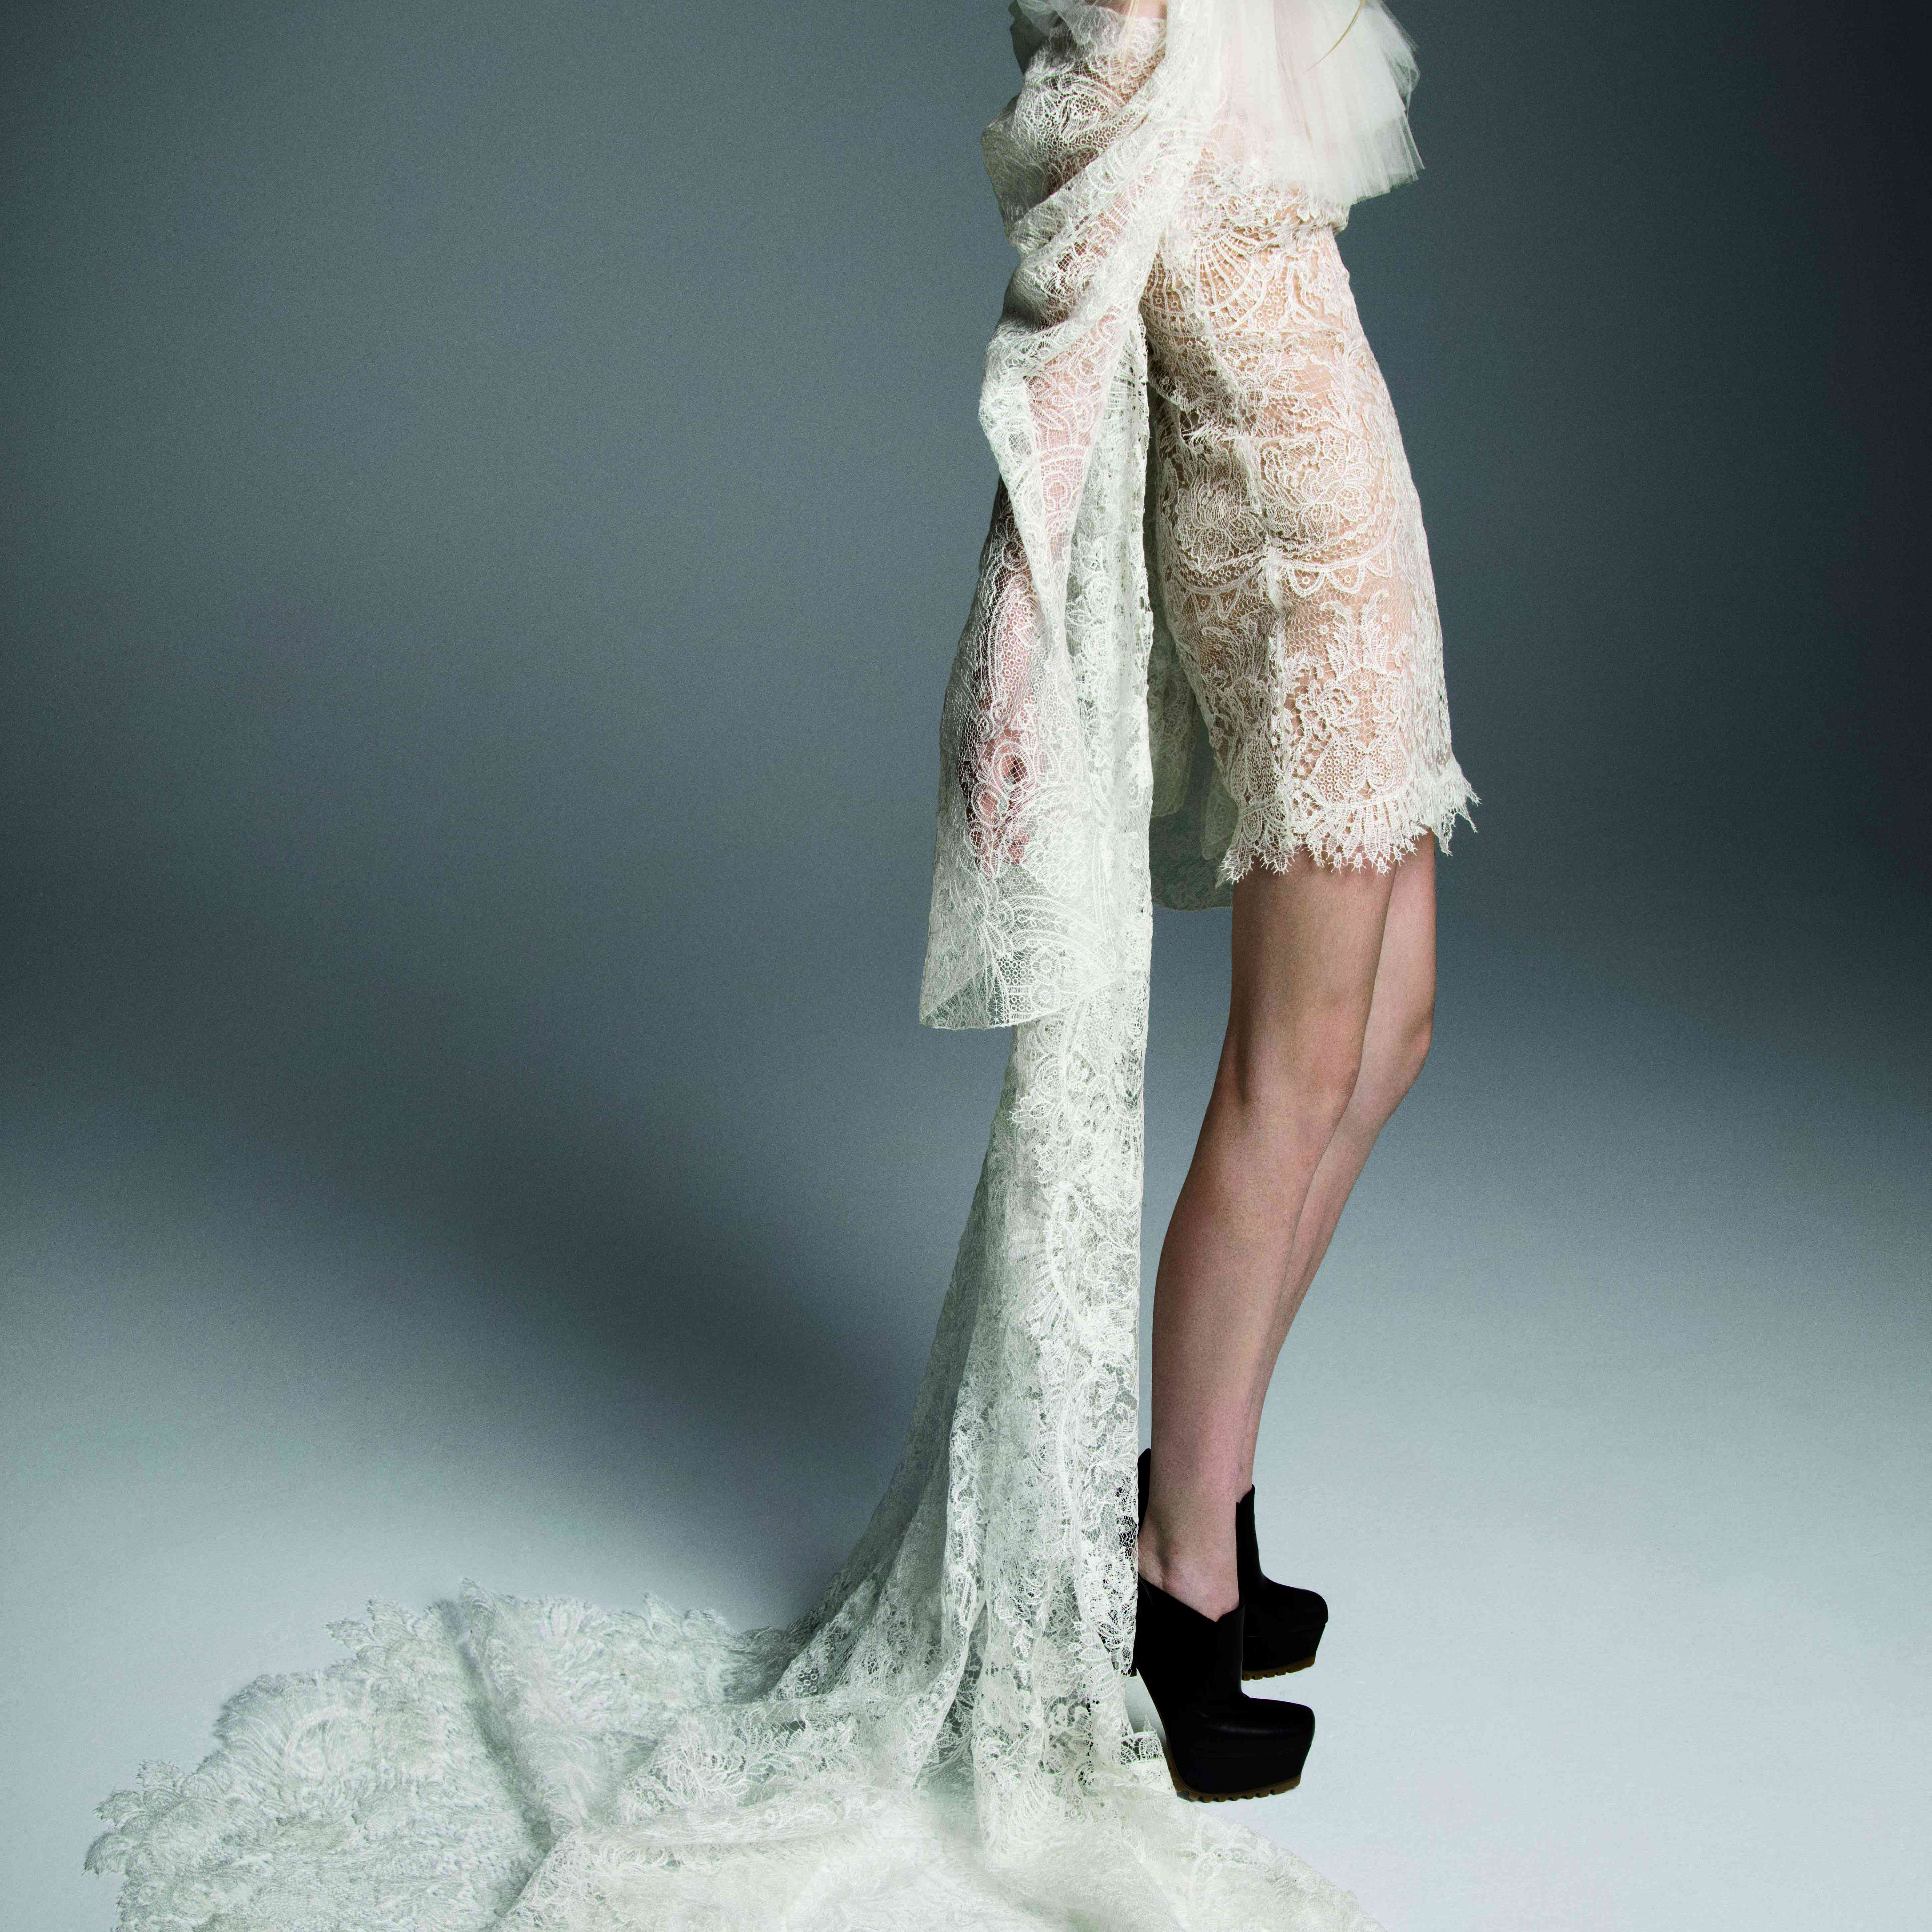 Model in lace mini dress with a watteau train and a dramatic draped sleeve